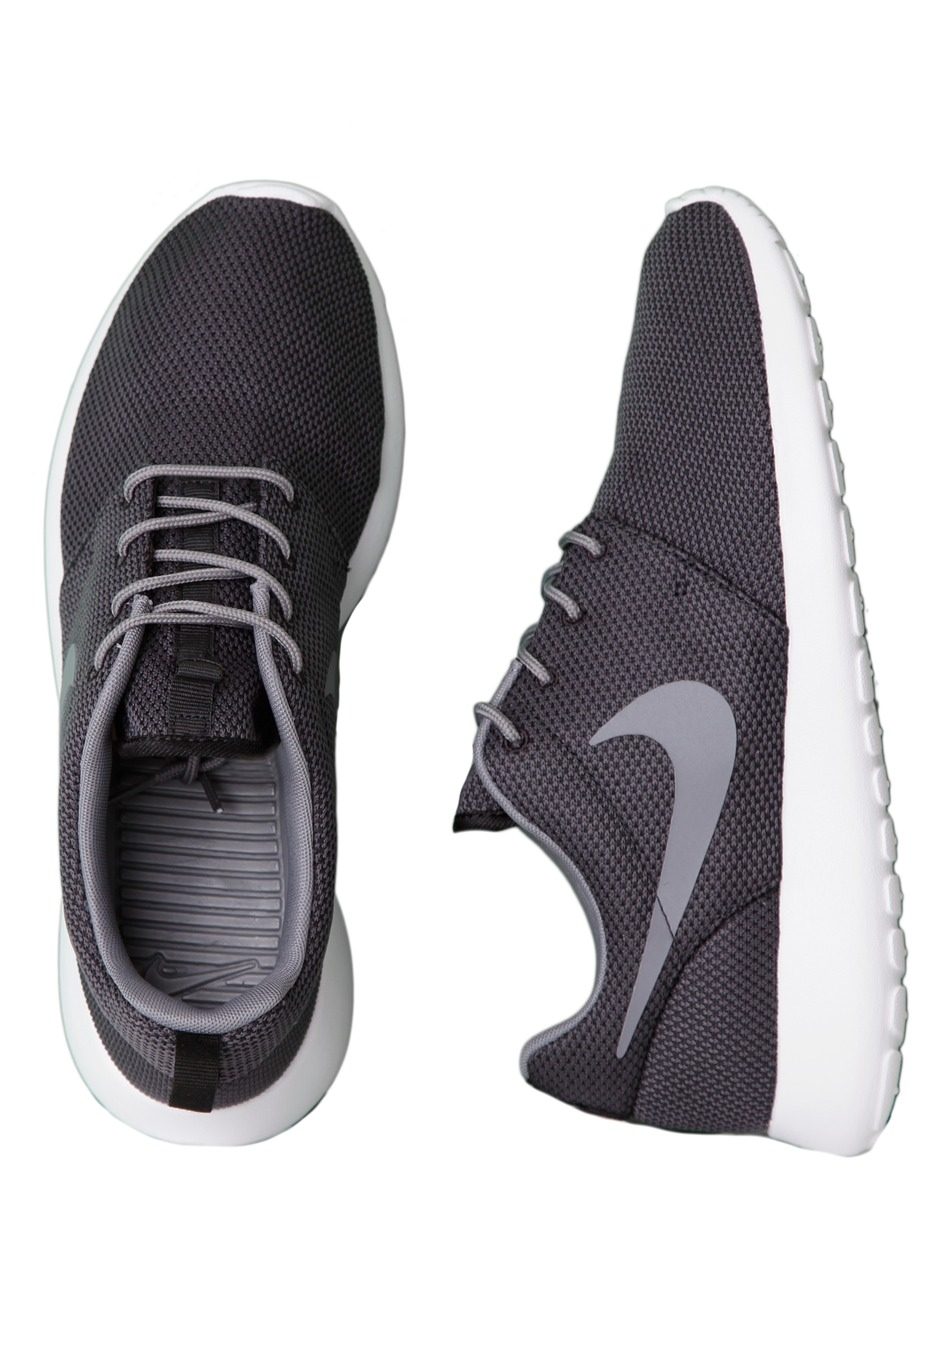 nike roshe run black cool grey white shoes impericon. Black Bedroom Furniture Sets. Home Design Ideas